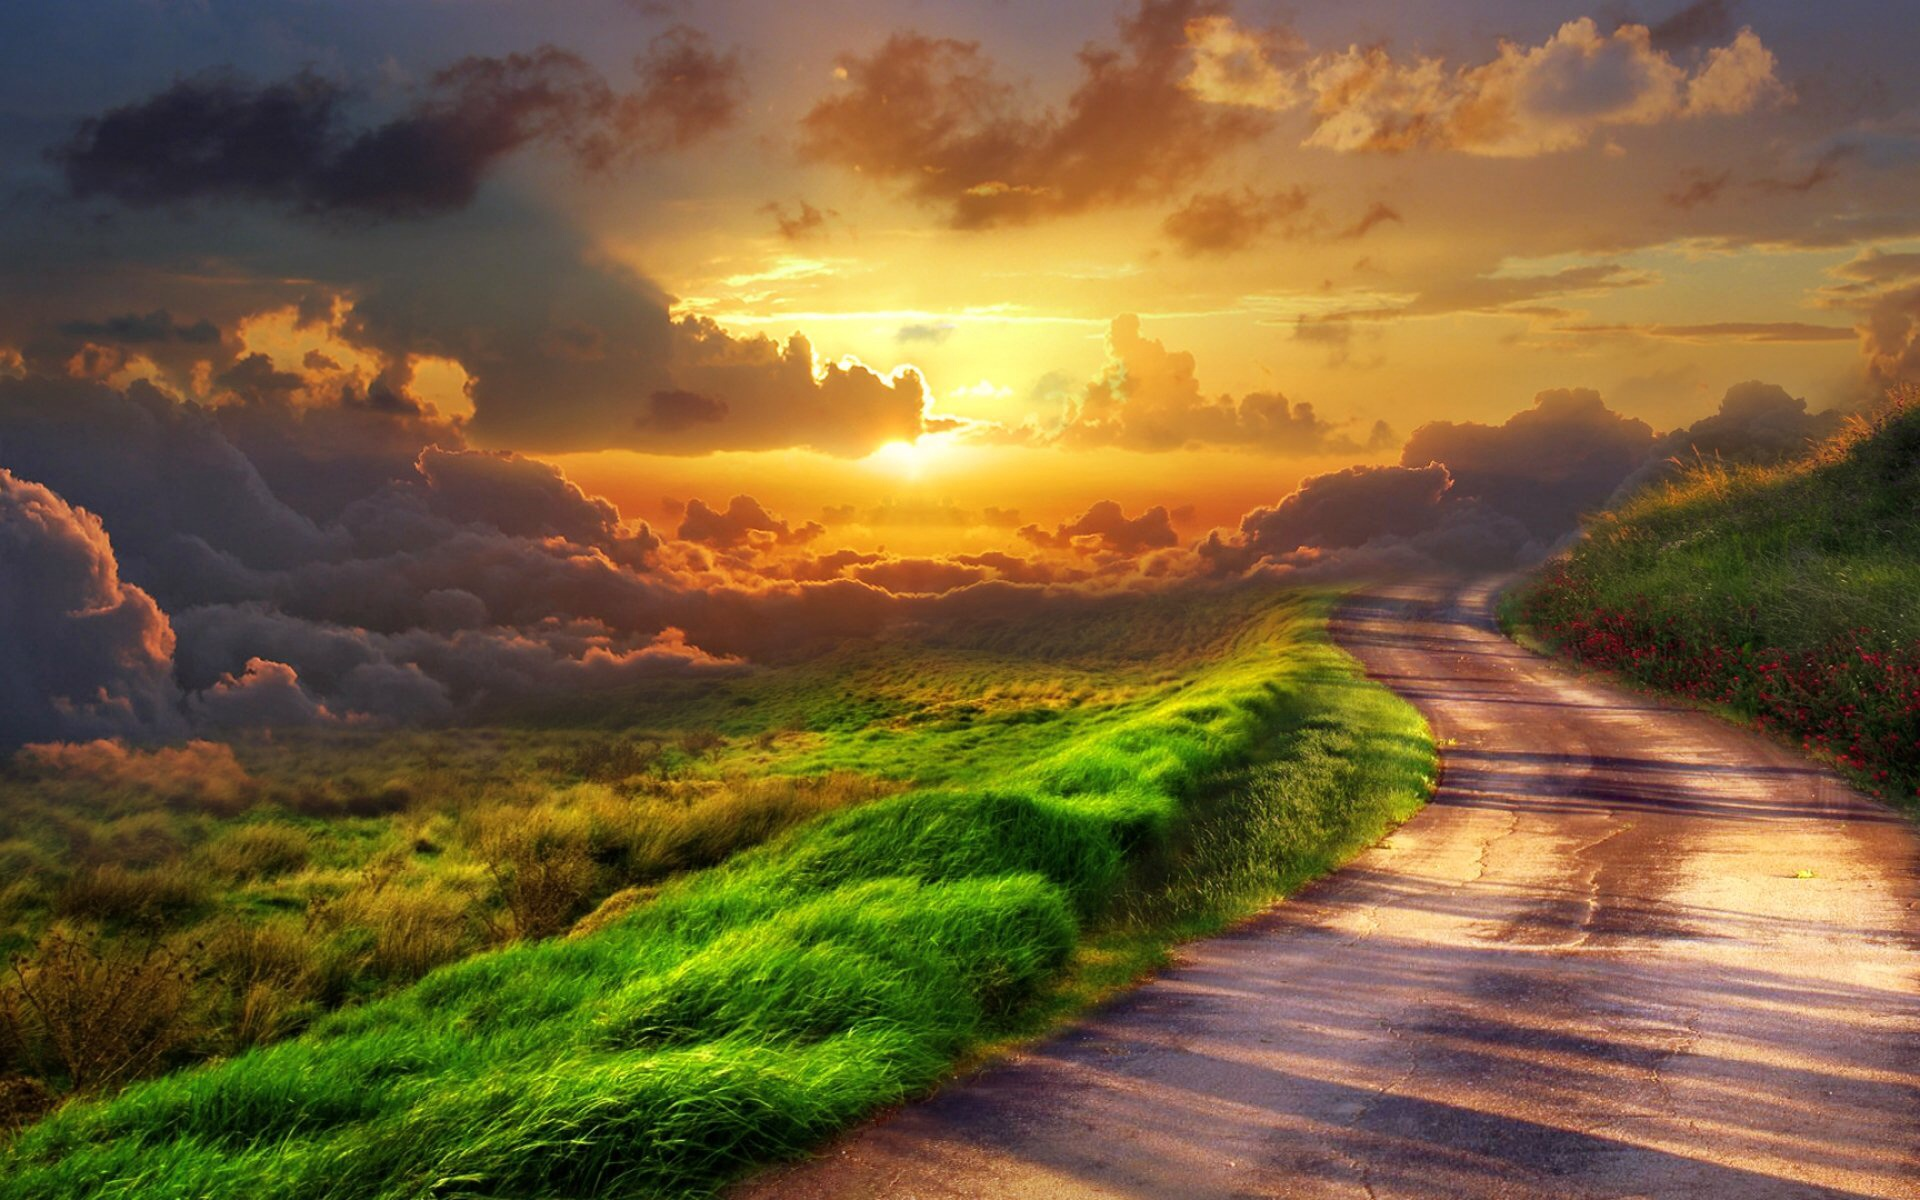 Wallpaper Heaven Heaven Images Road To Heaven Hd Wallpaper And Background